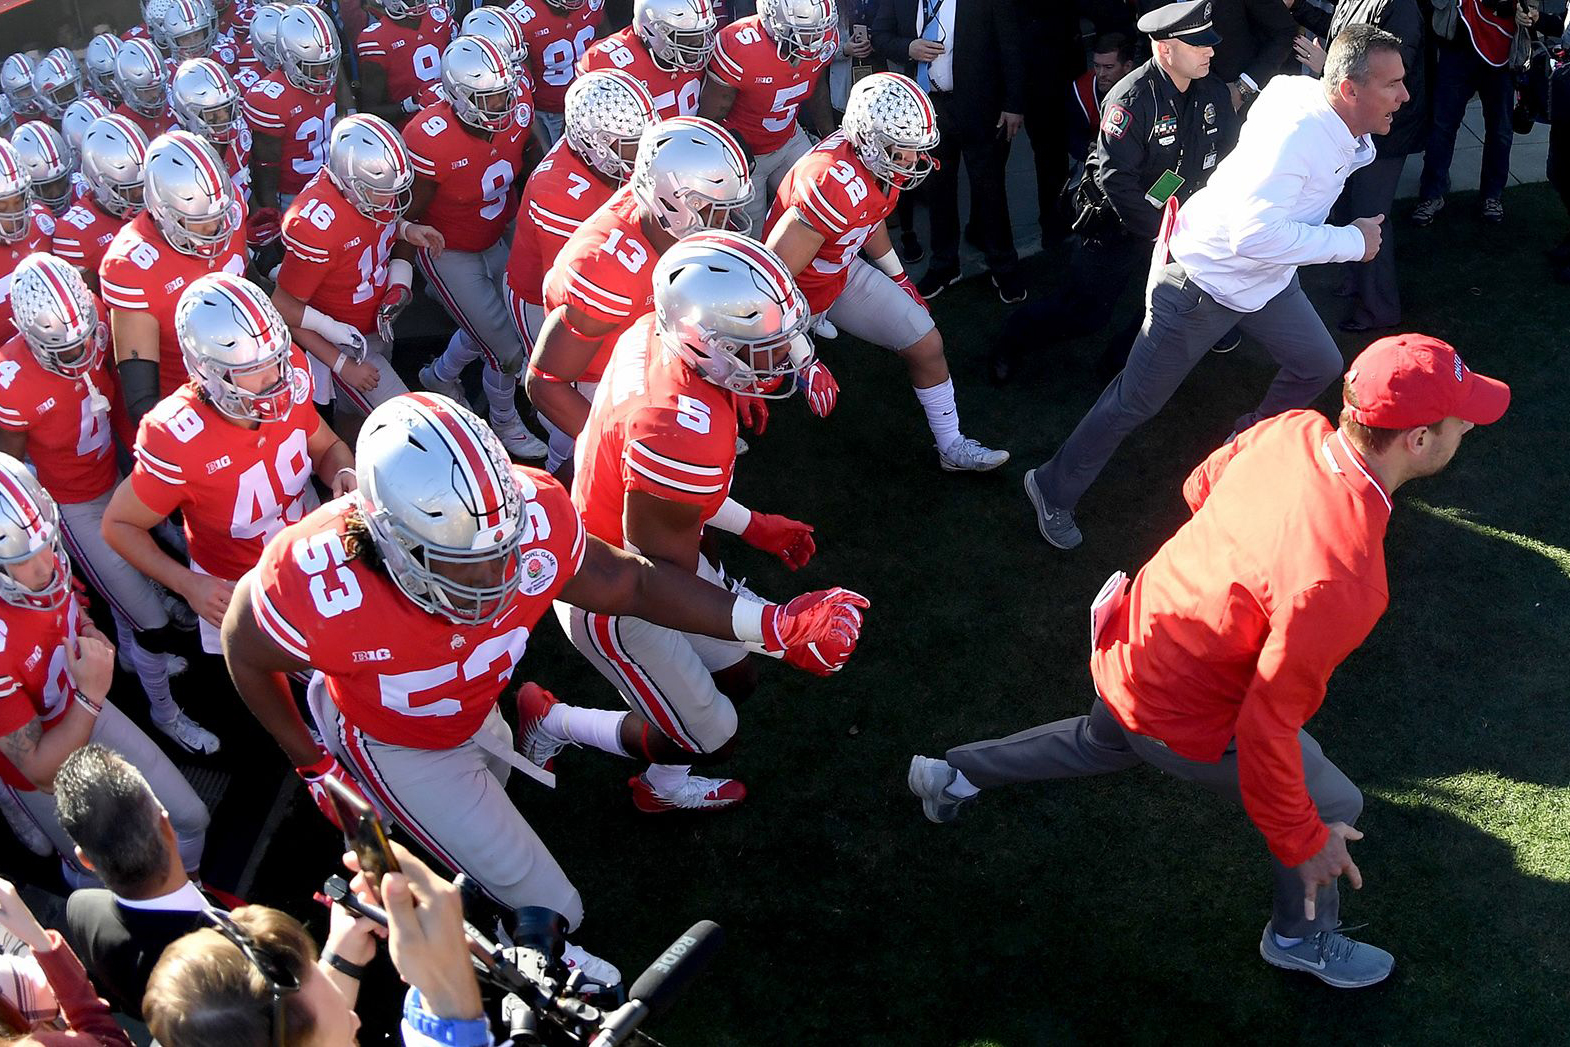 Big Ten to start football on weekend of Oct. 23-24, league says